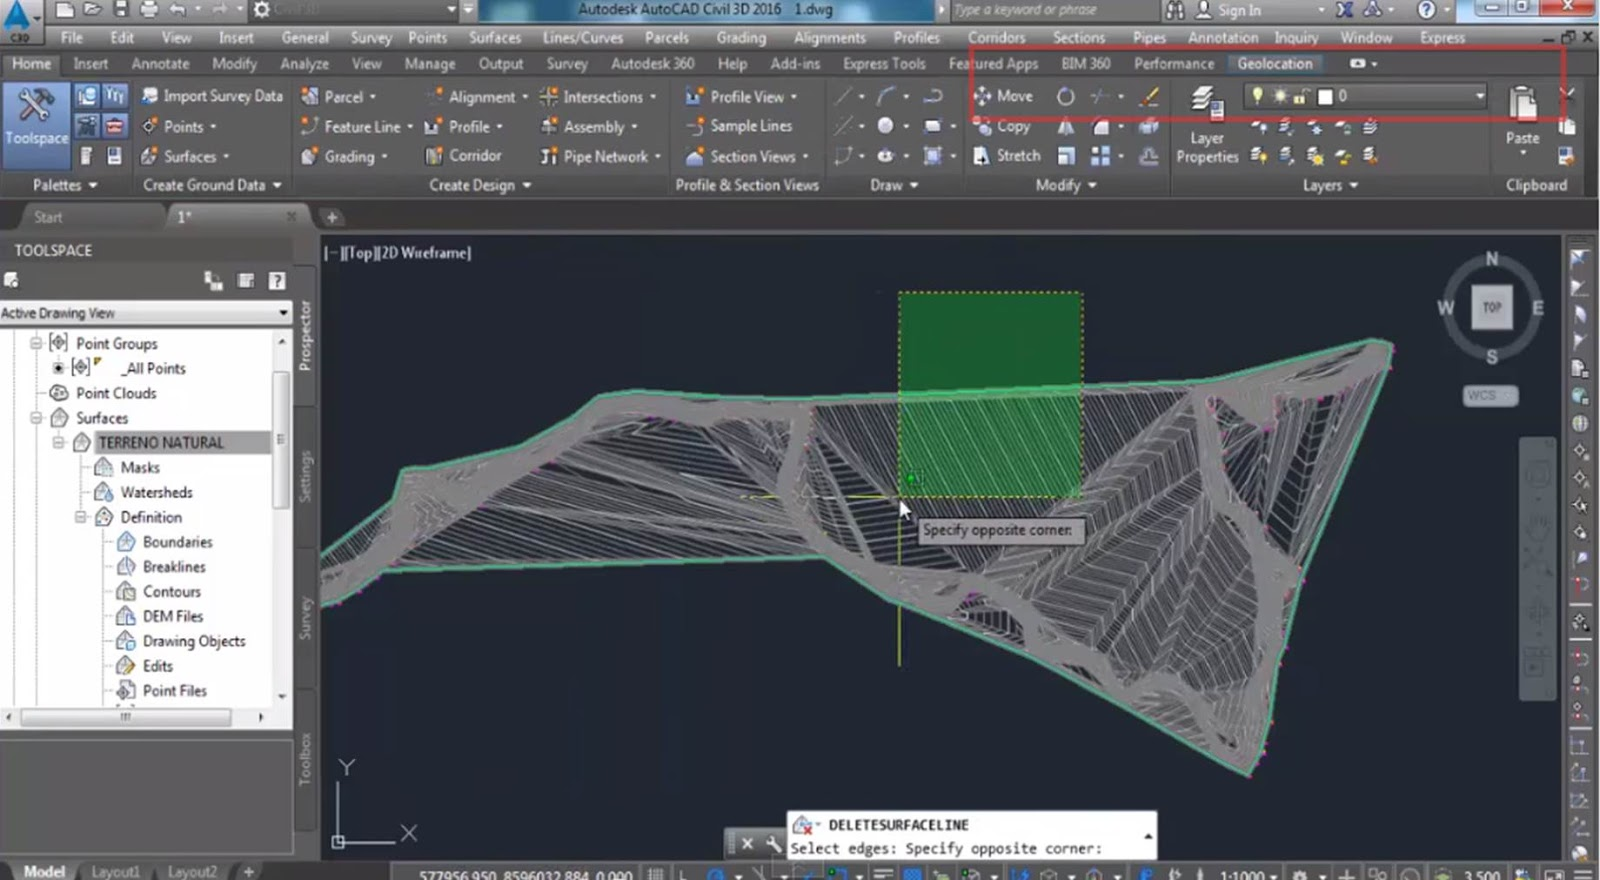 keygen autocad civil 3d 2012 64 bit